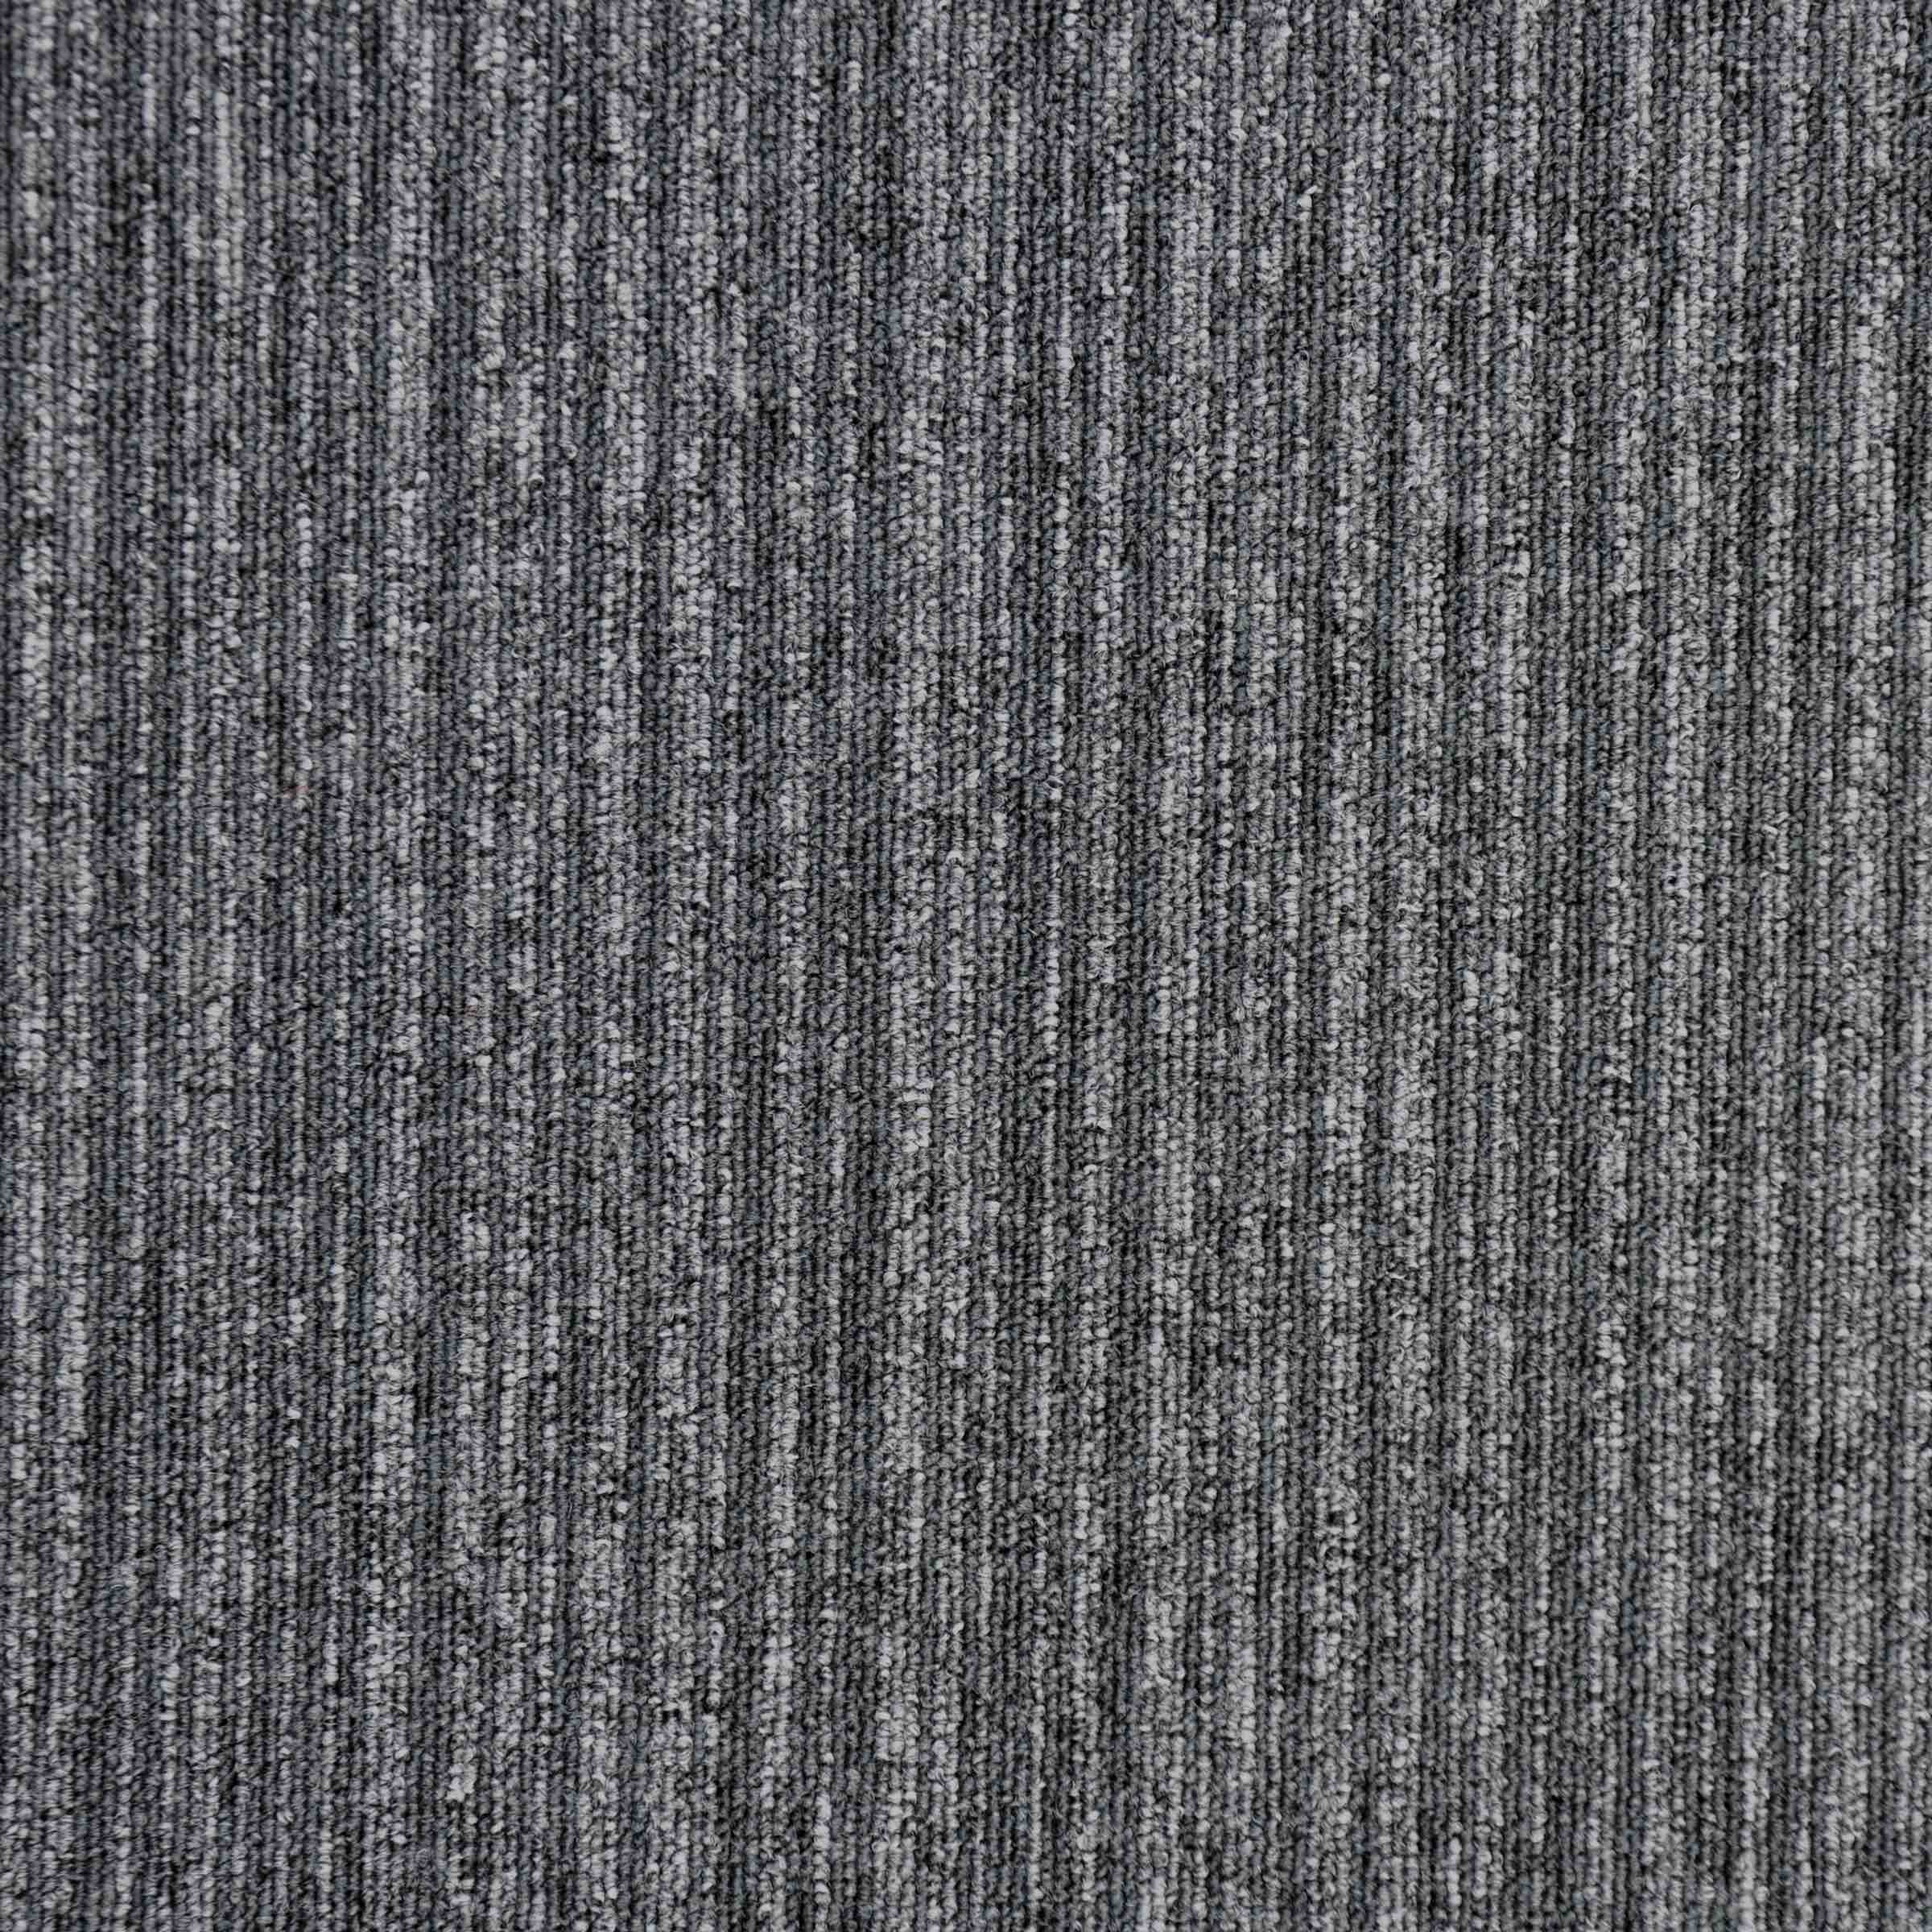 Vital | 878316 | Paragon Carpet Tiles | Commercial Carpet Tiles